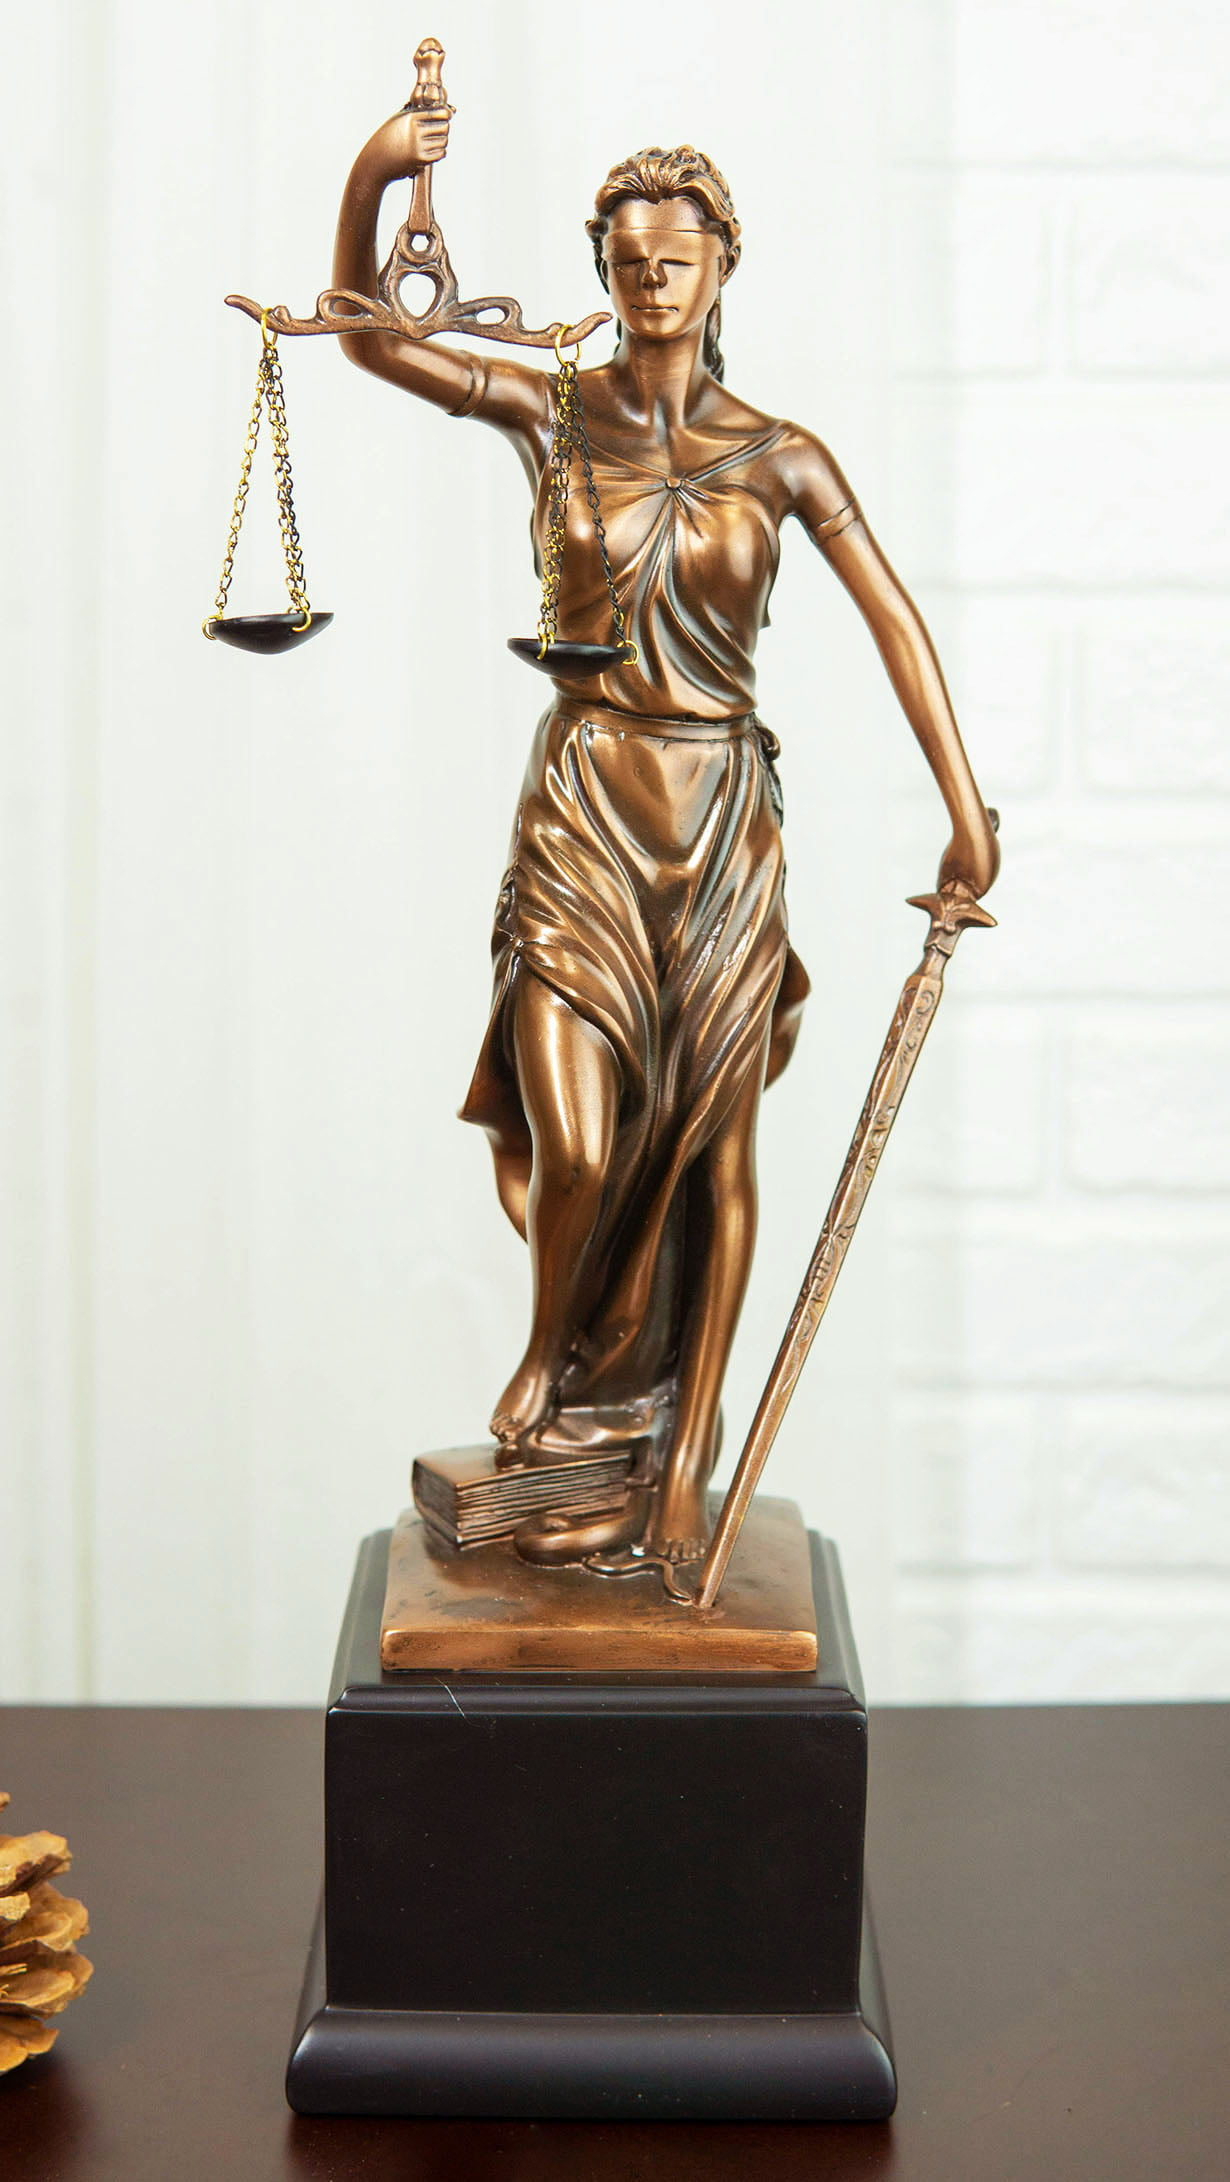 Greek Lady Goddess Of Justice La Justica With Sword And Scales Statue On Base Walmart Com Walmart Com